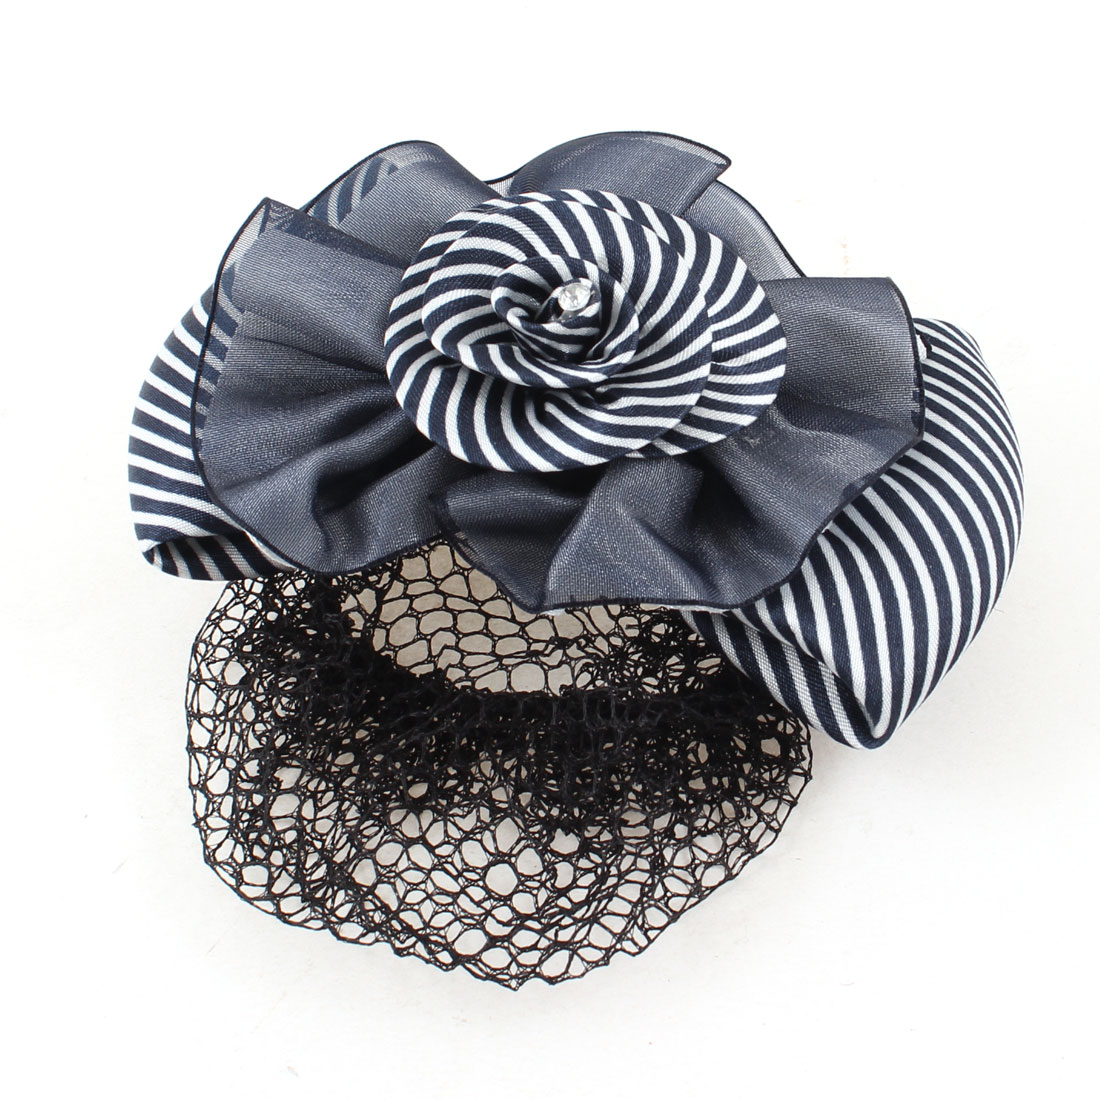 Blue White Striped Polyester Bowknot Design Barrette Hair Clip w Snood Net